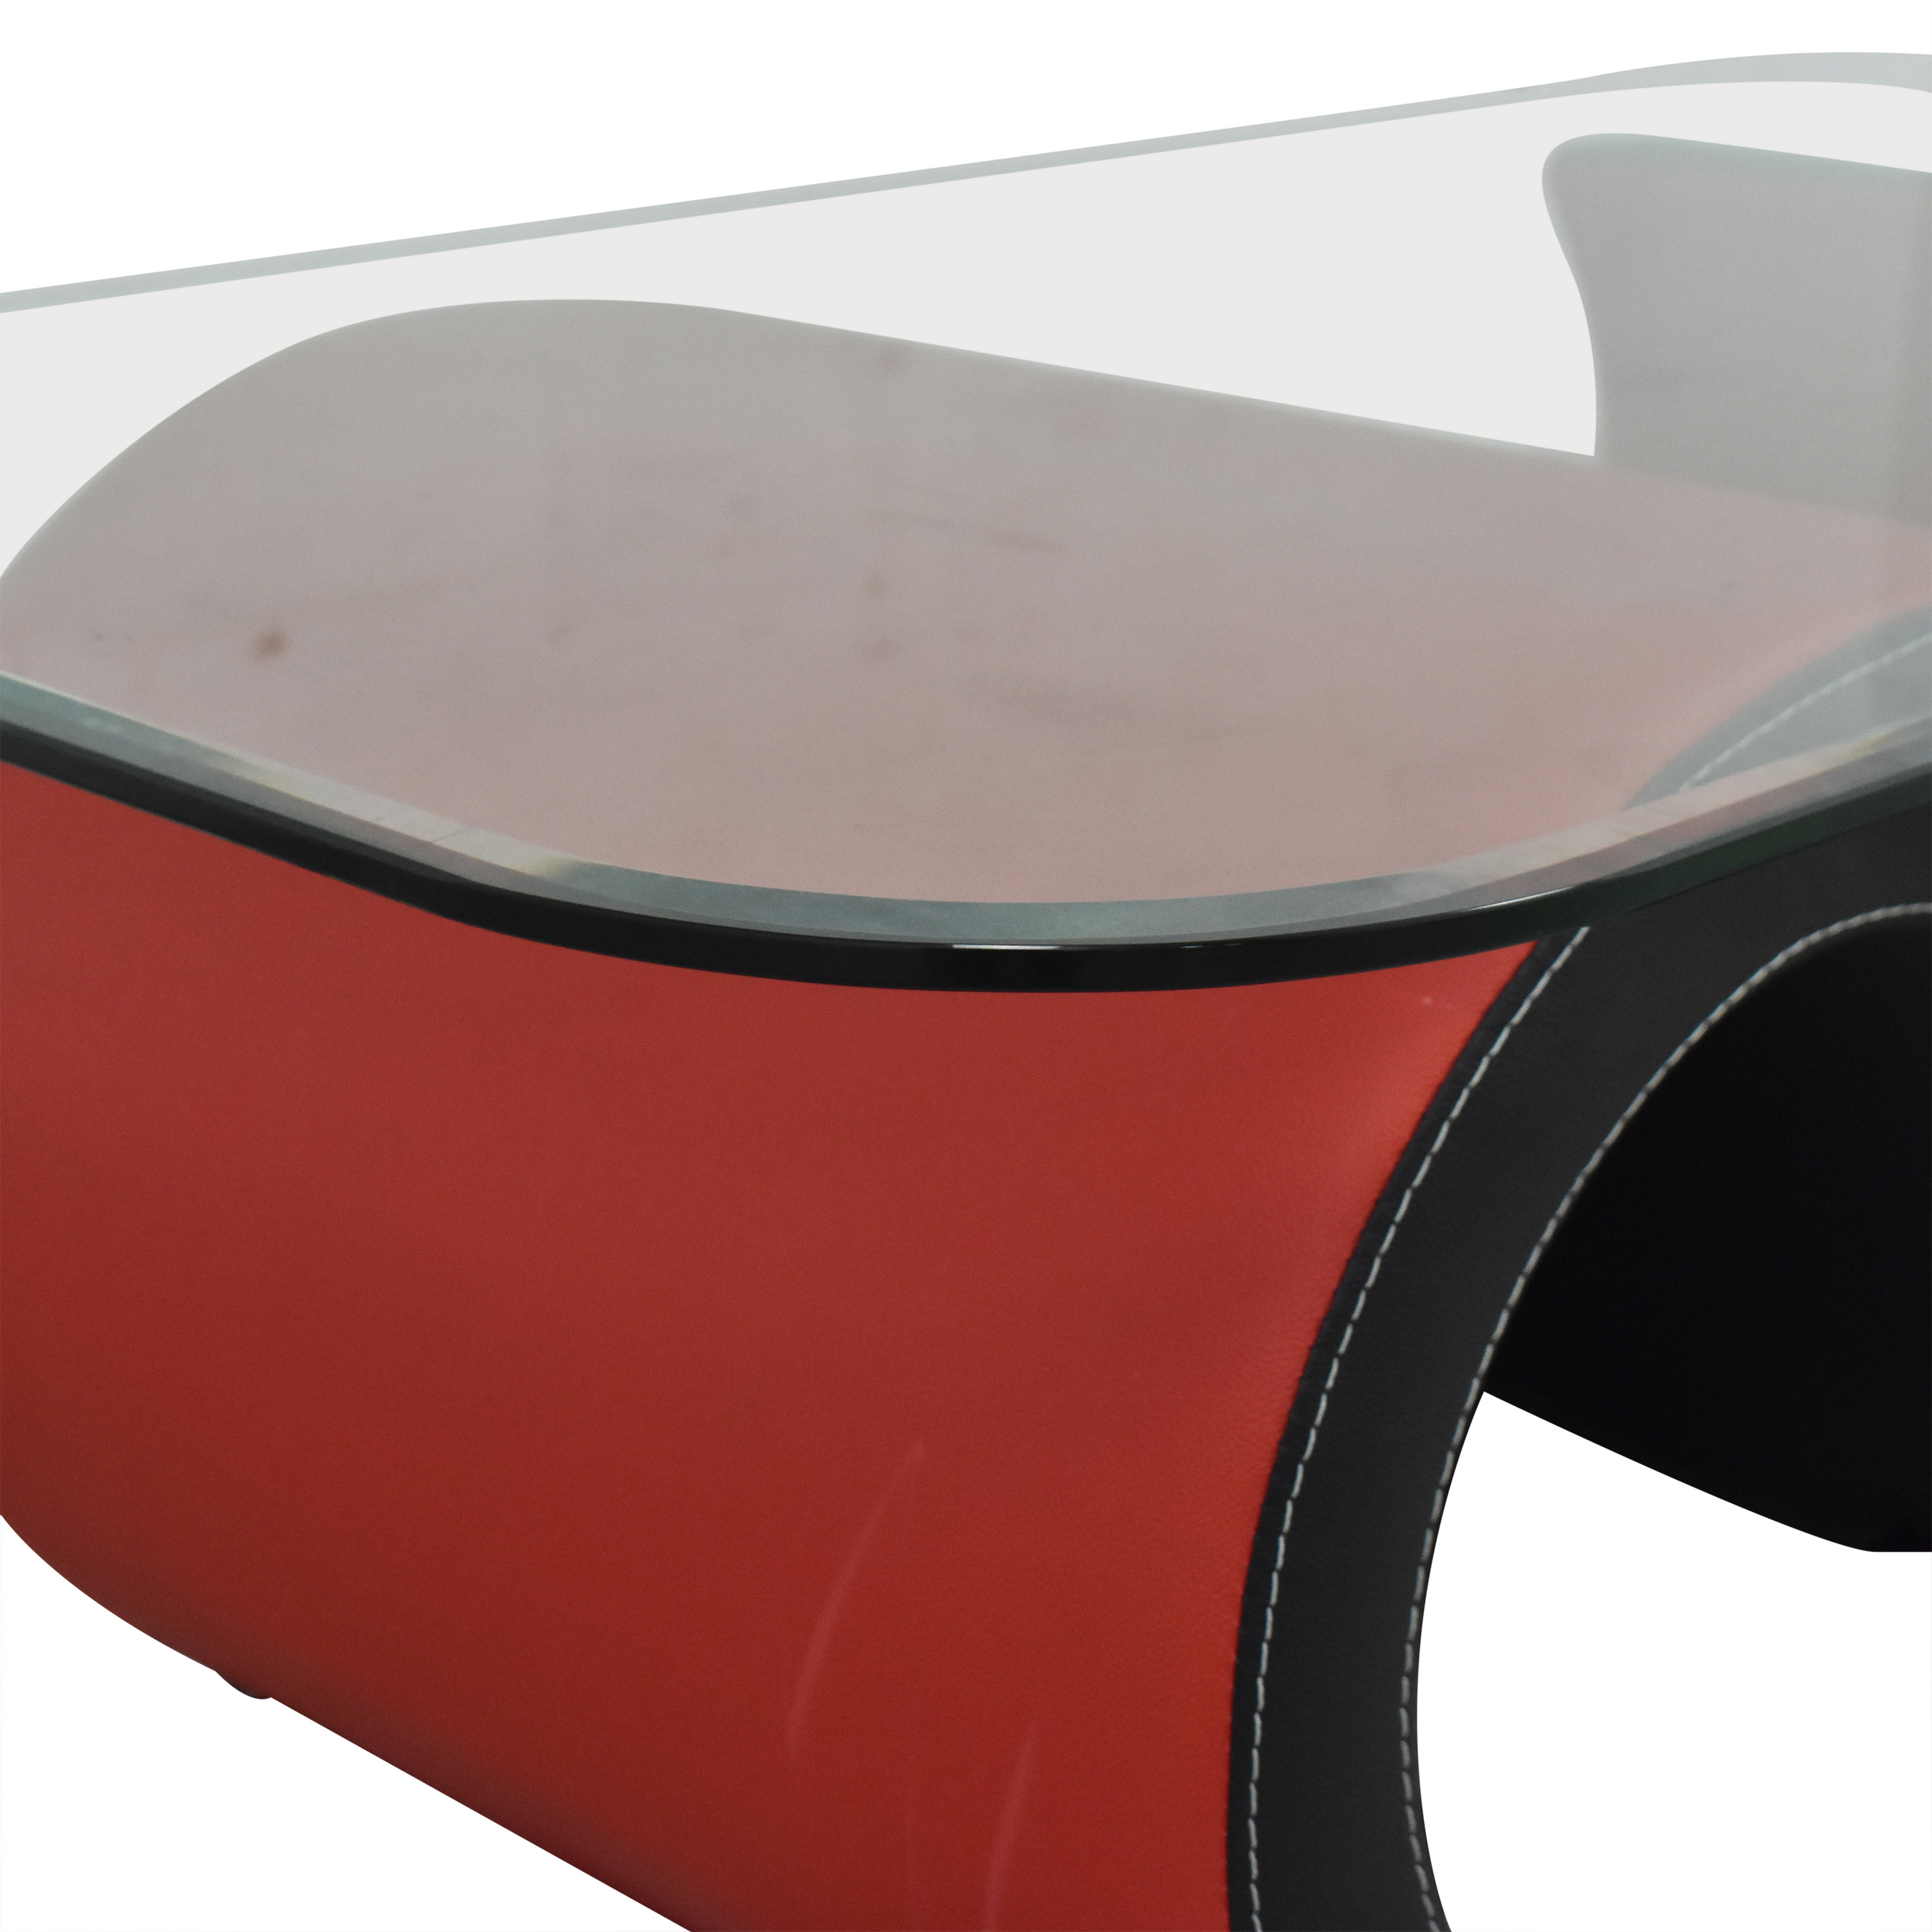 buy Macy's Macy's Abstract Coffee Table with Transparent Surface online